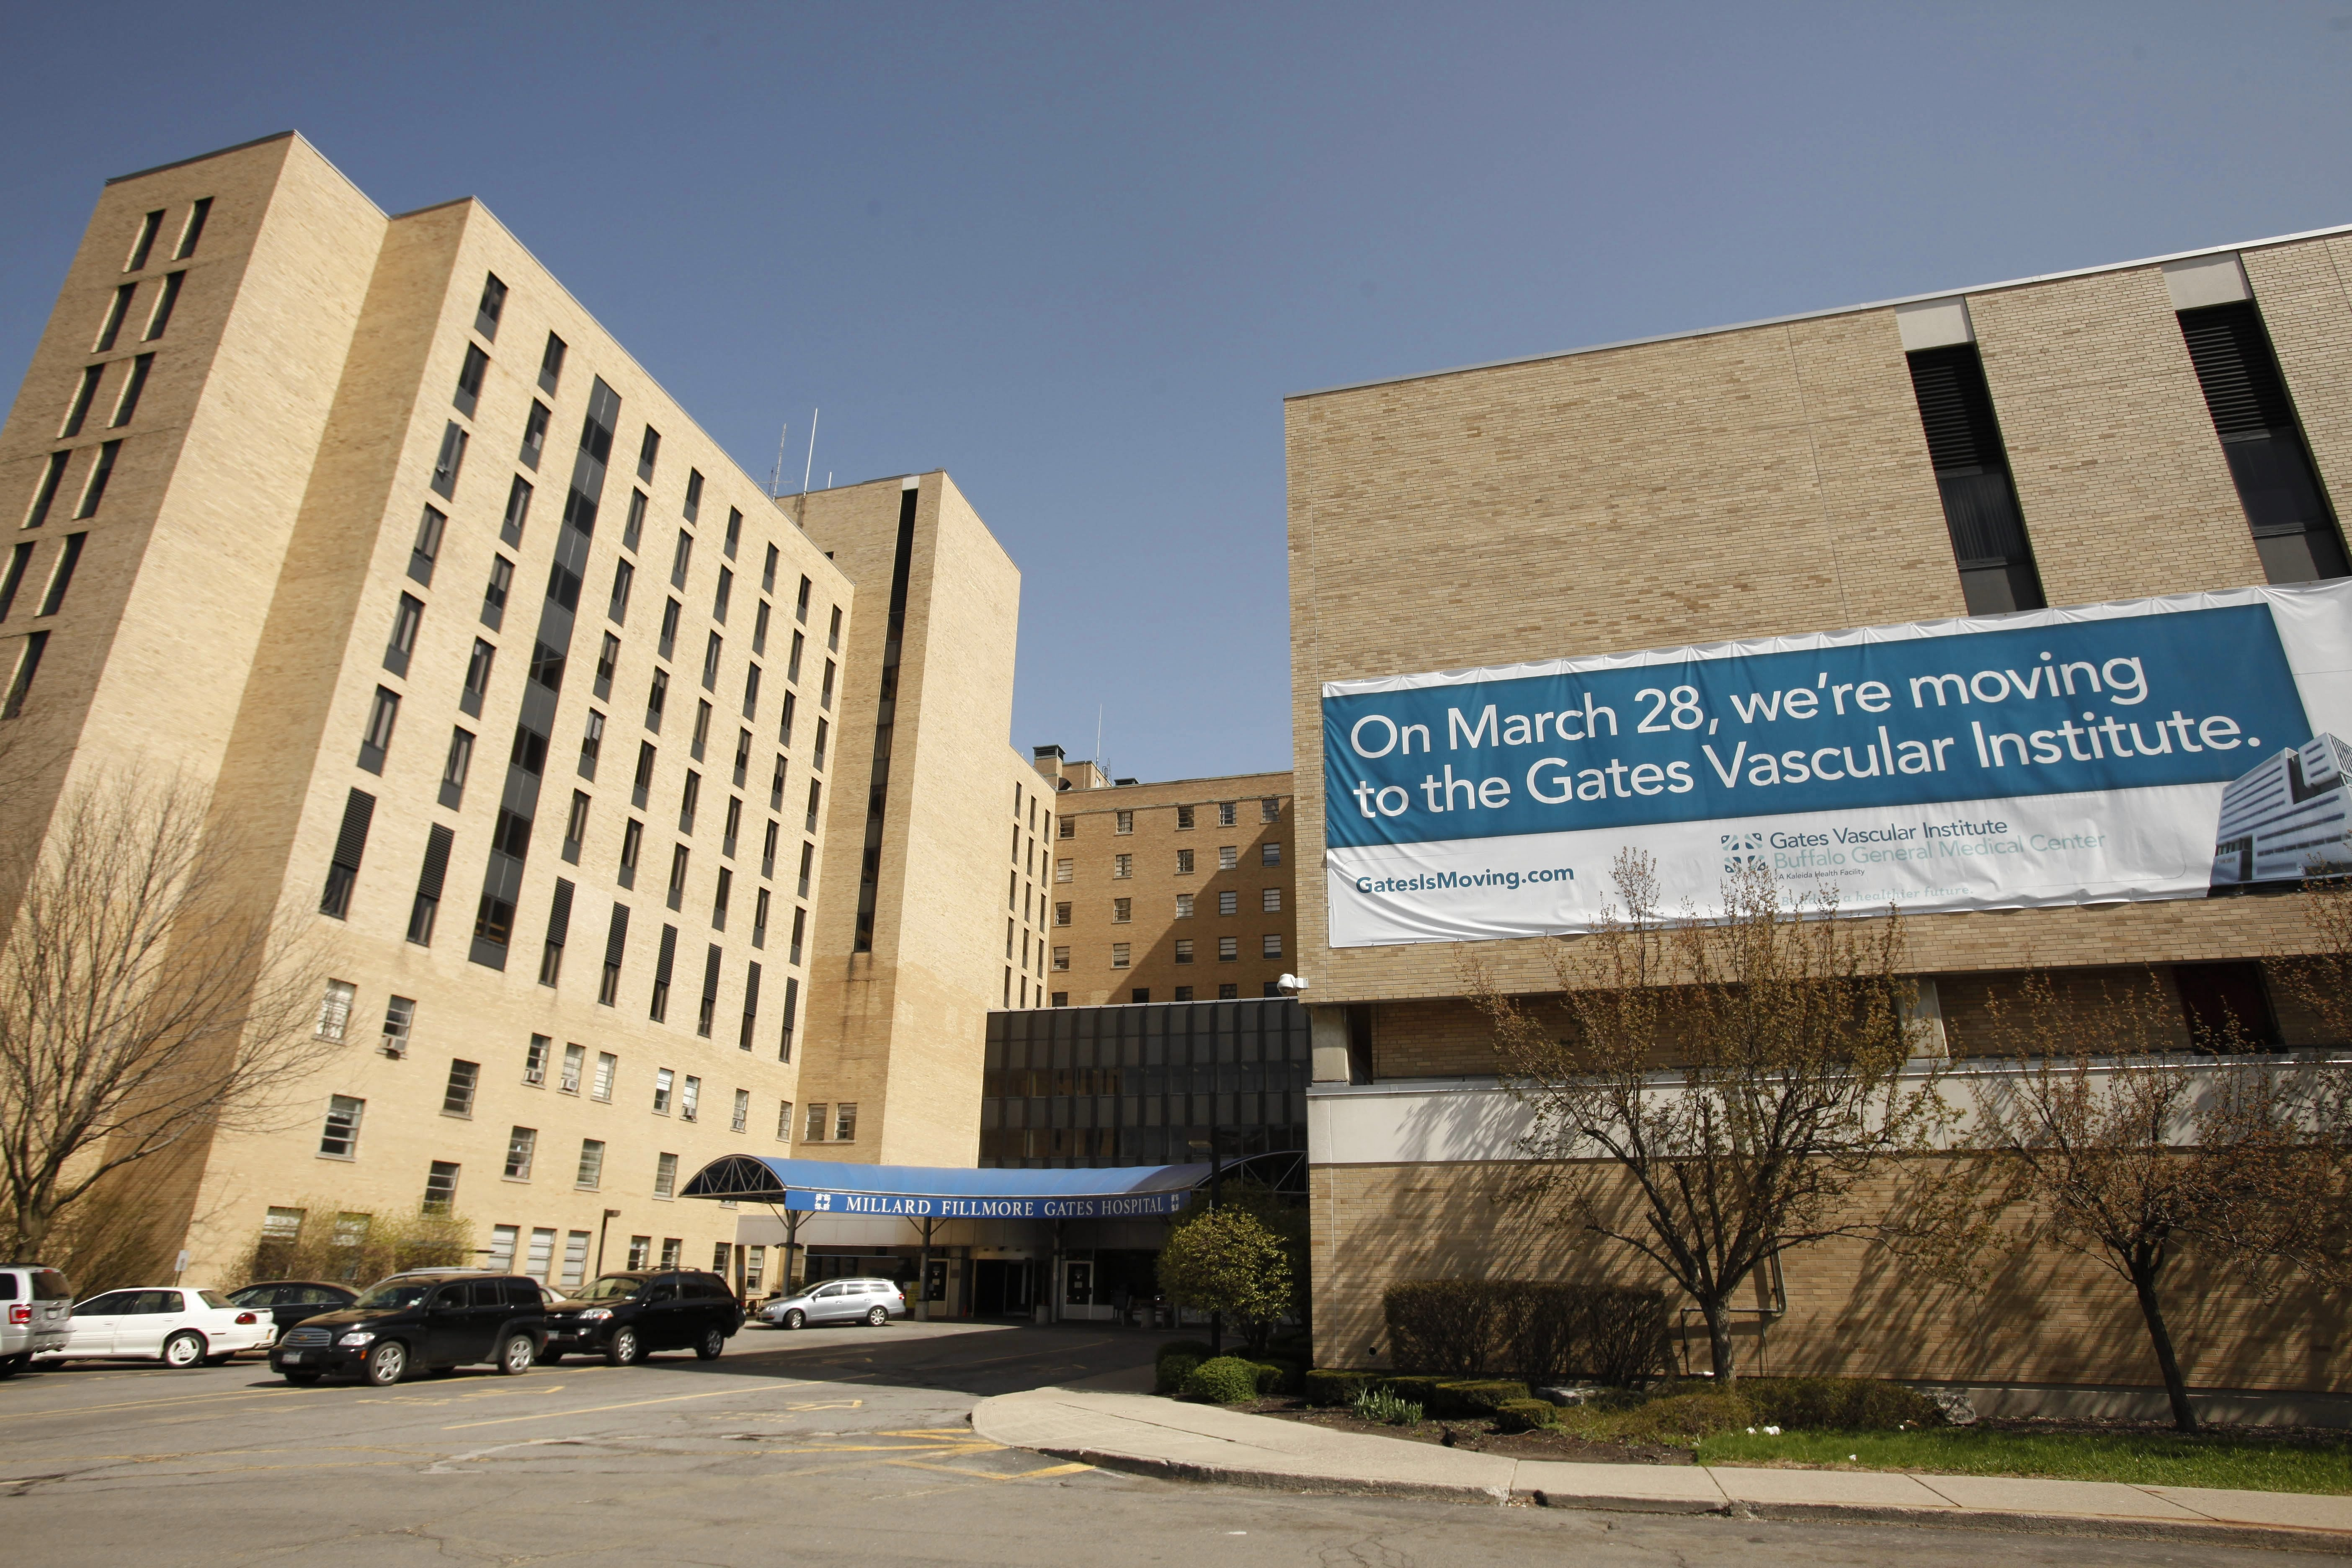 Three proposals have been submitted to reuse Millard Fillmore Gates Circle Hospital. {Derek Gee / Buffalo News file photo}